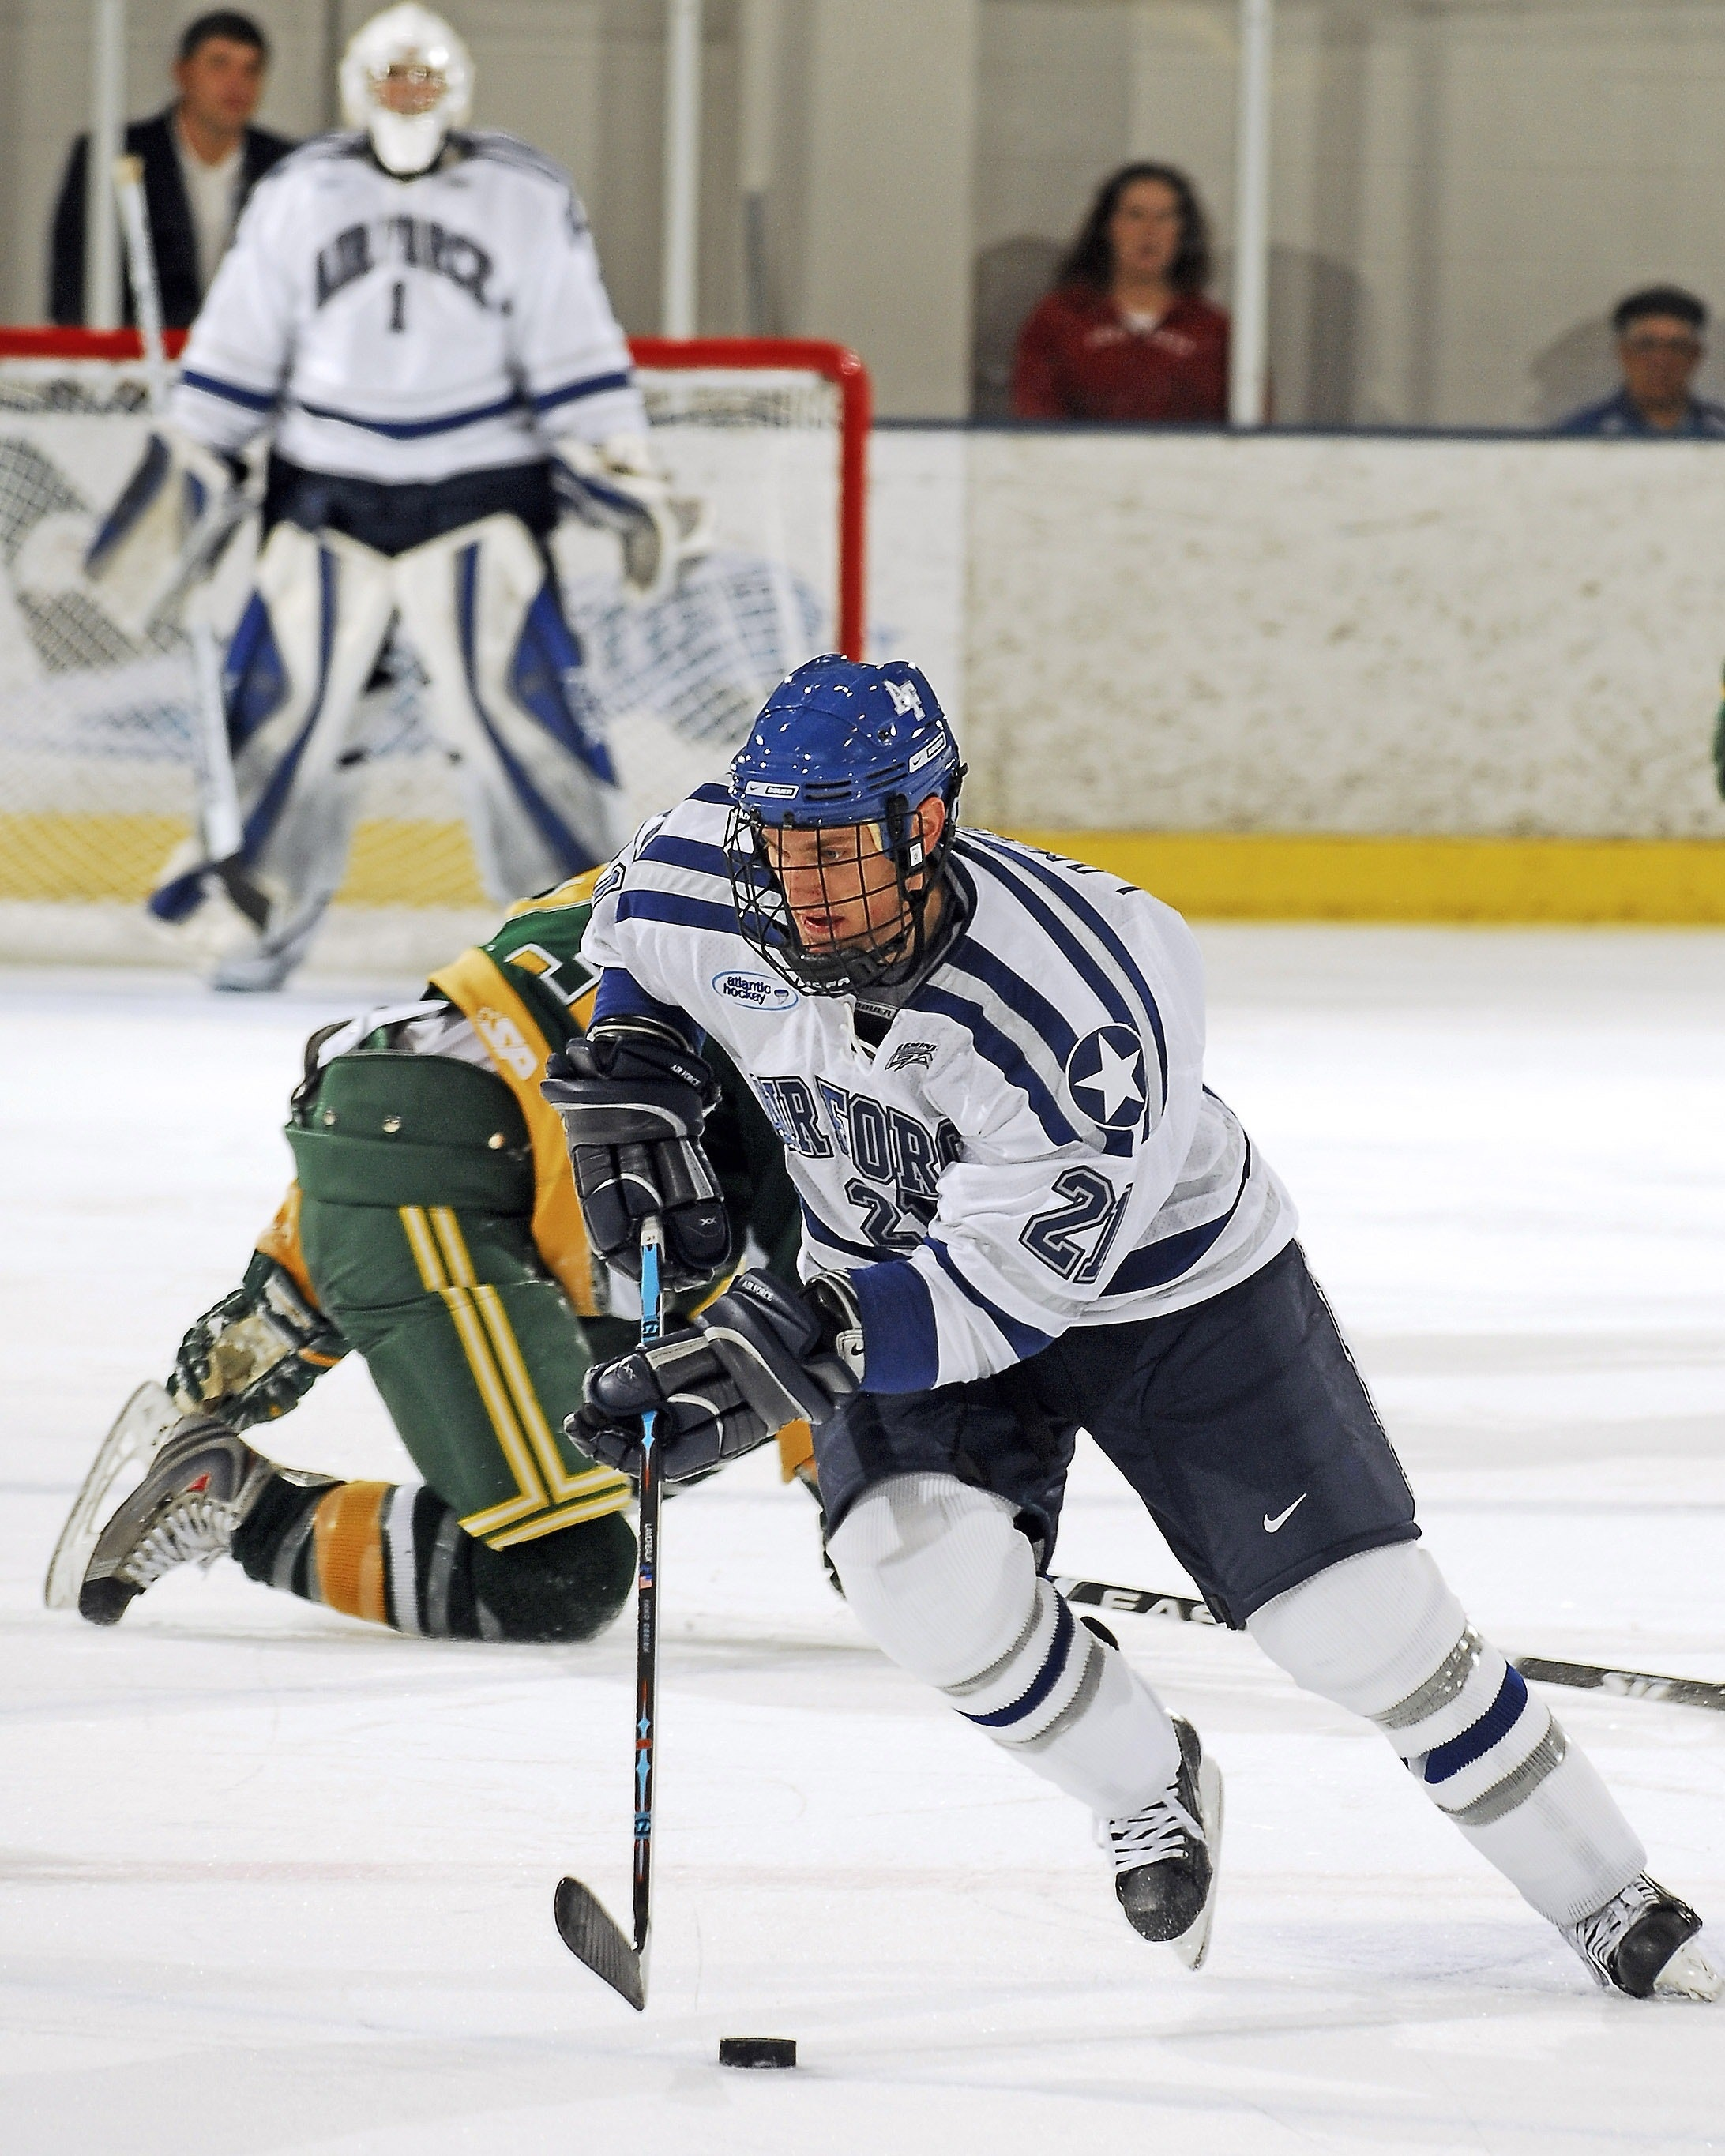 a hockey player in a white and blue uniform pushes a puck across the ice, while a hockey player in a green and yellow uniform stumbles behind him